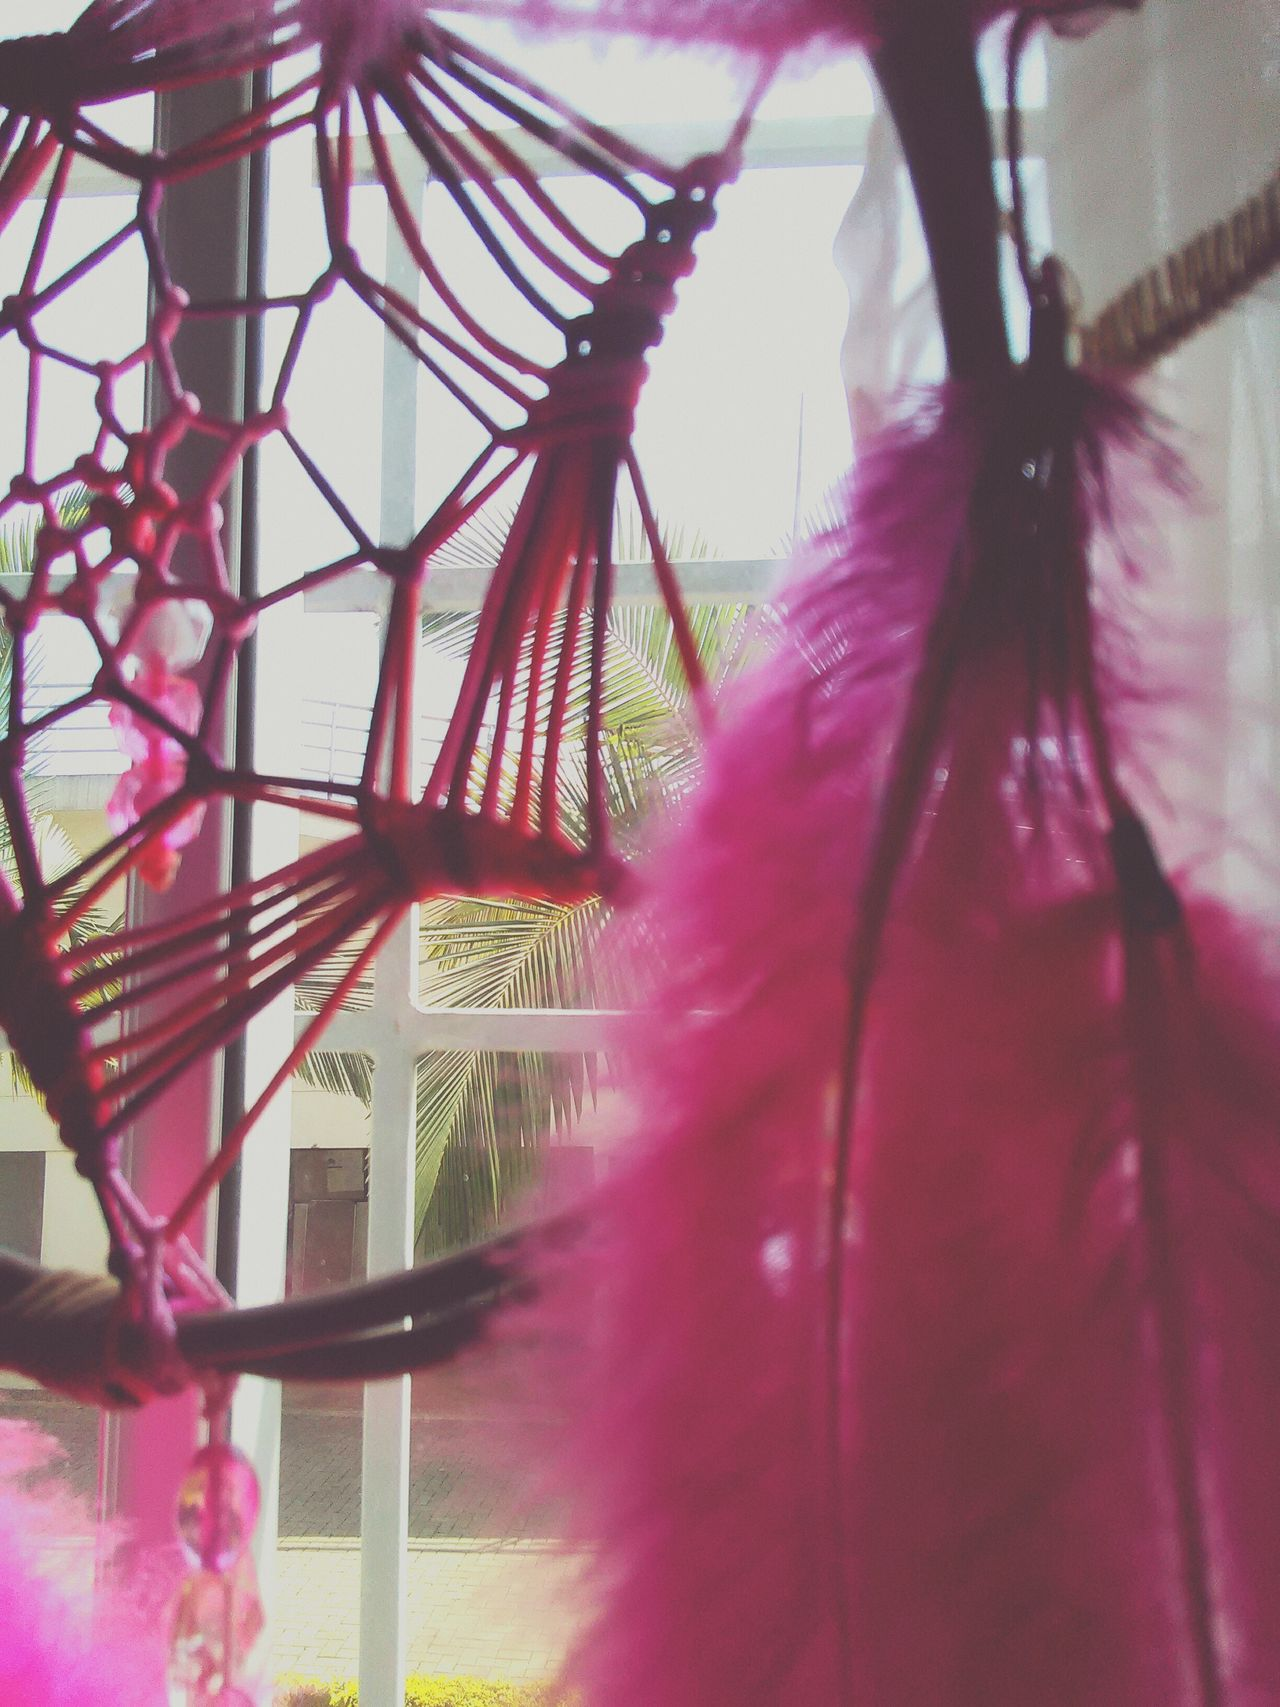 No People Day Outdoors Window Accesories Dream Catcher Pink Happy